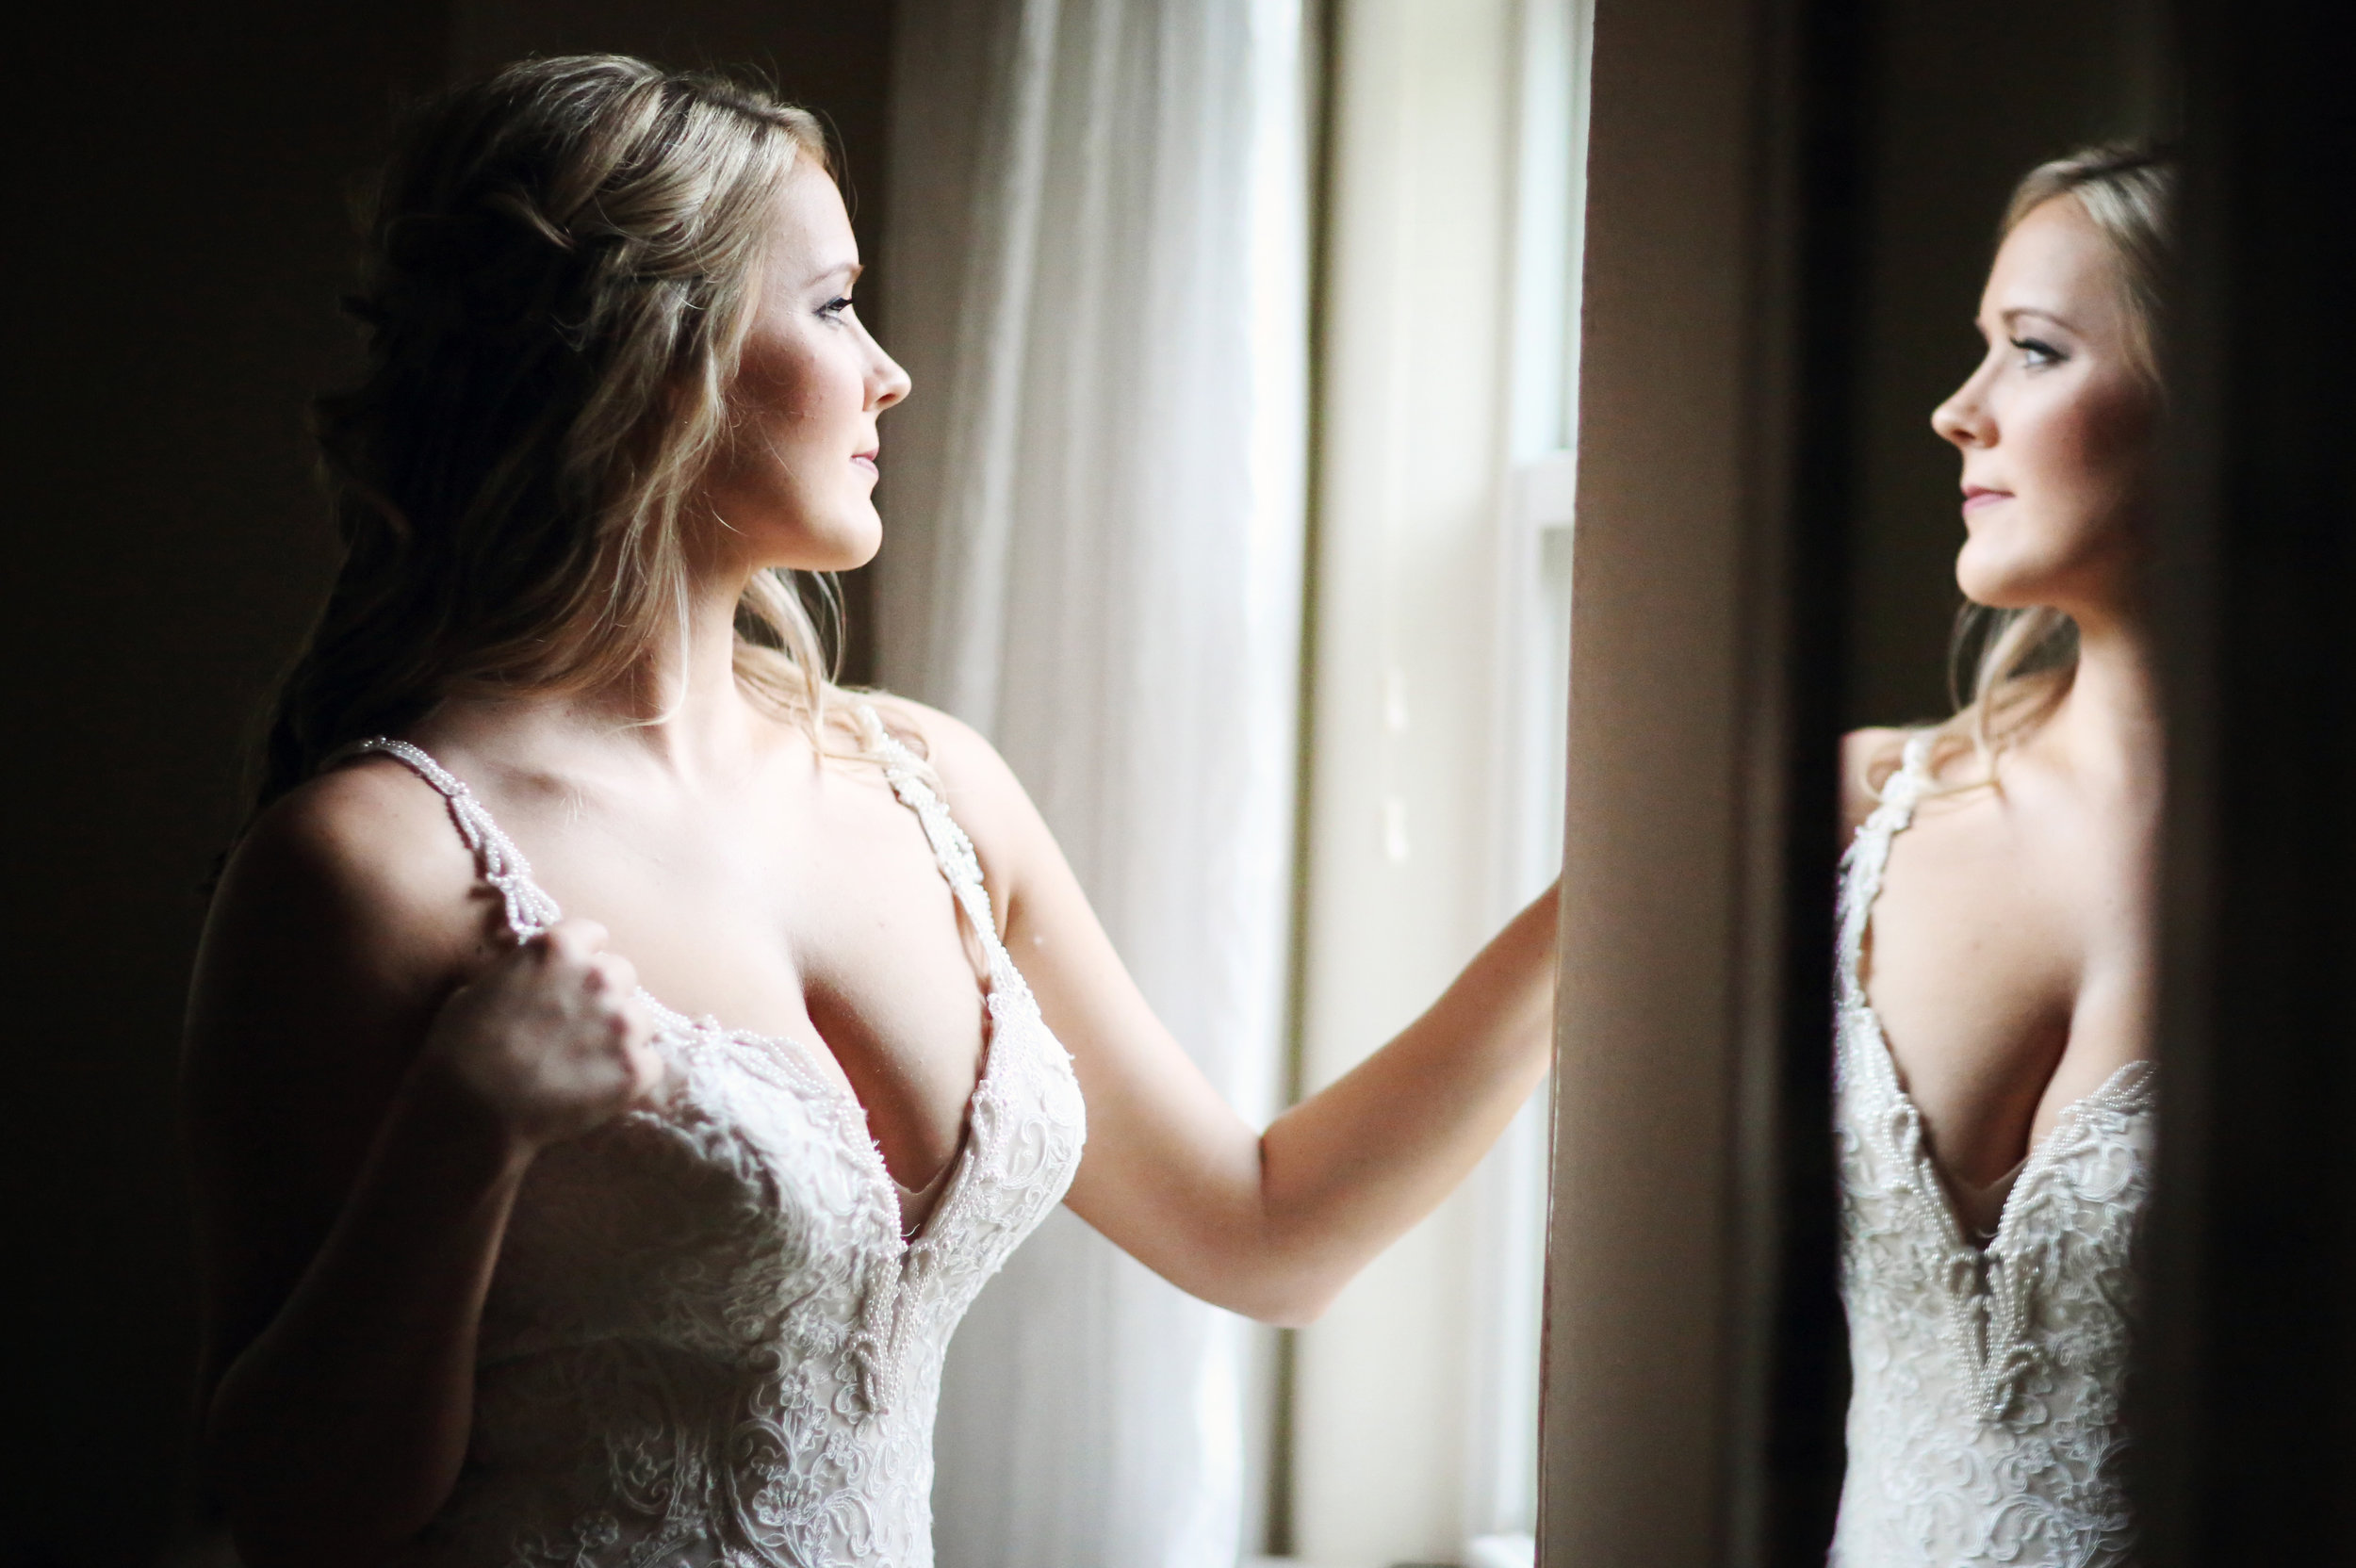 Great fine art photo of a bride looking in the mirror at her reflection.